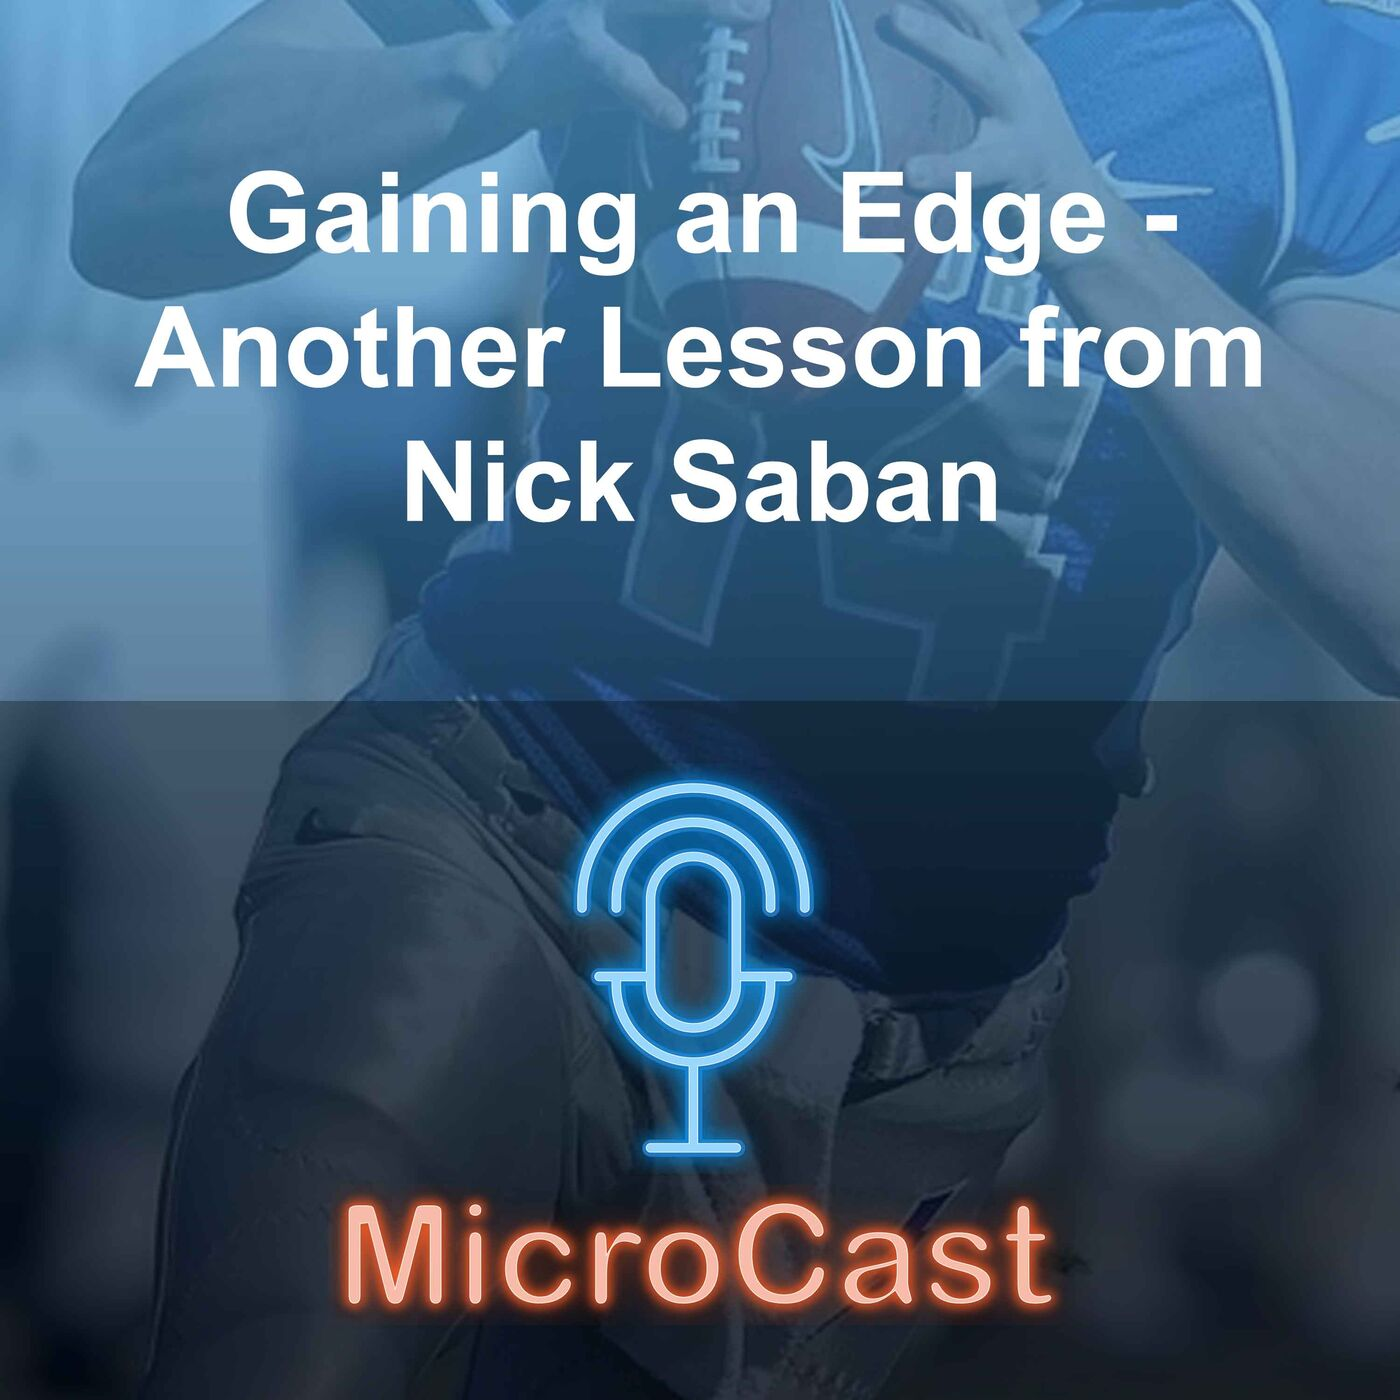 Episode 26 - Gaining an Edge - Another Lesson from Nick Saban